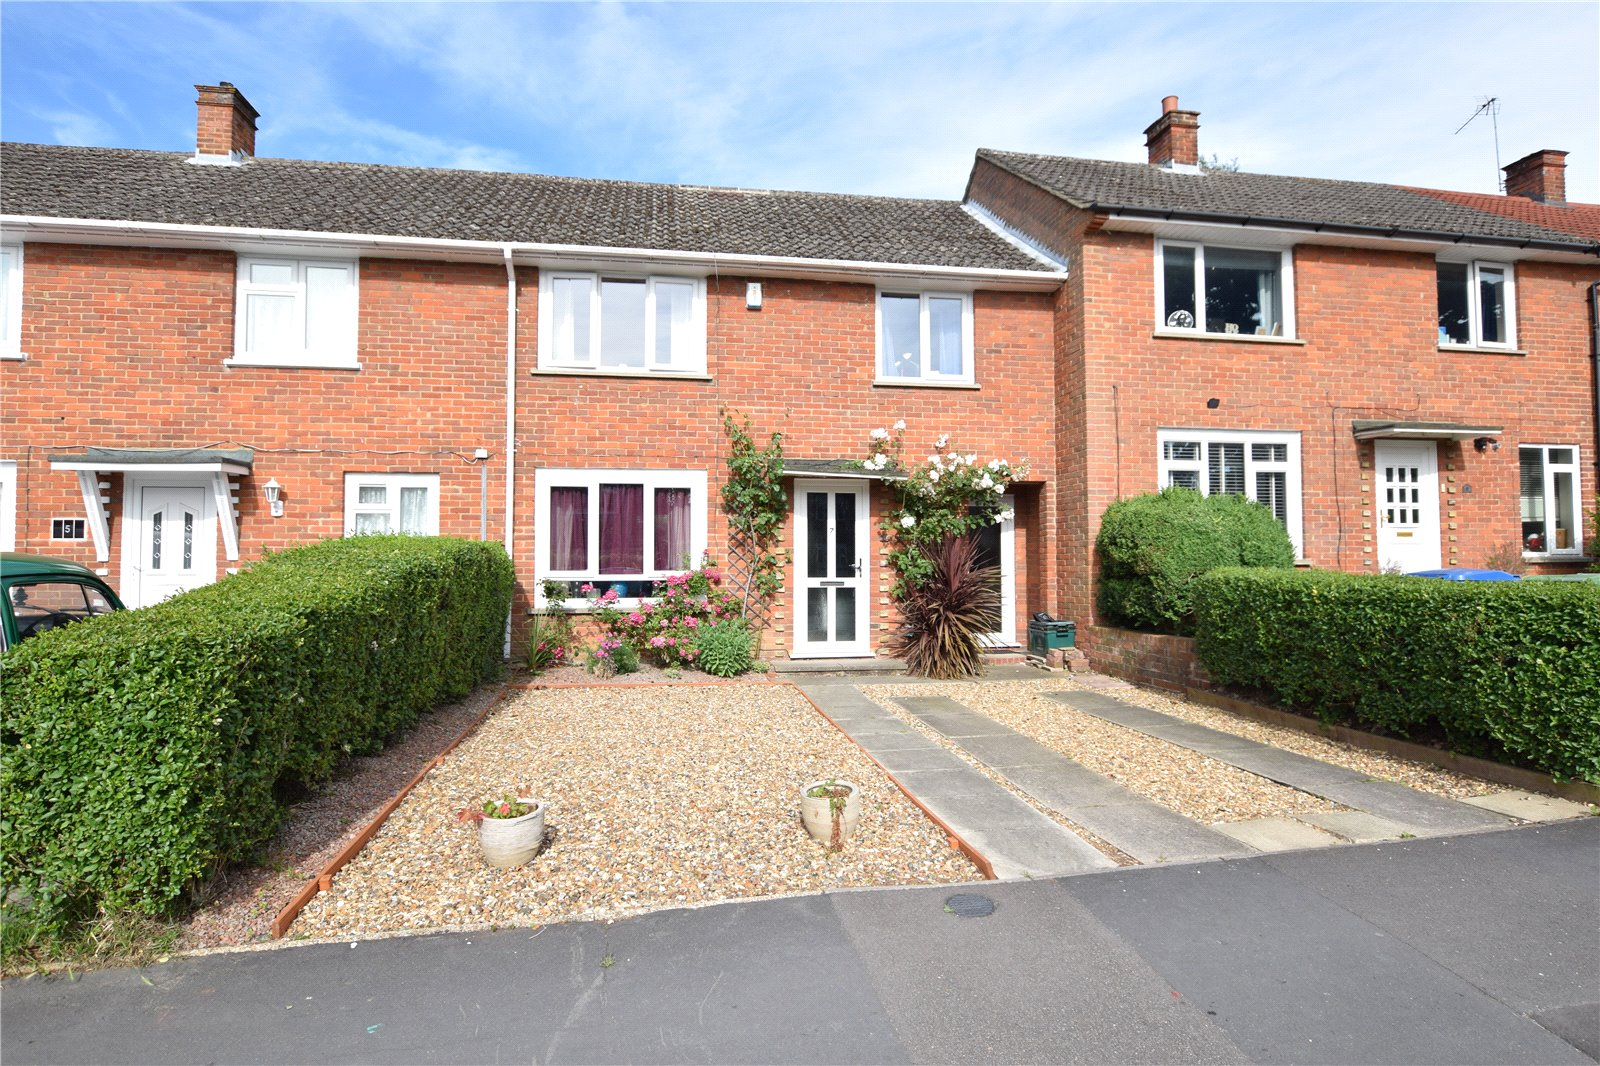 3 Bedrooms Terraced House for sale in Pondmoor Road, Bracknell, Berkshire, RG12